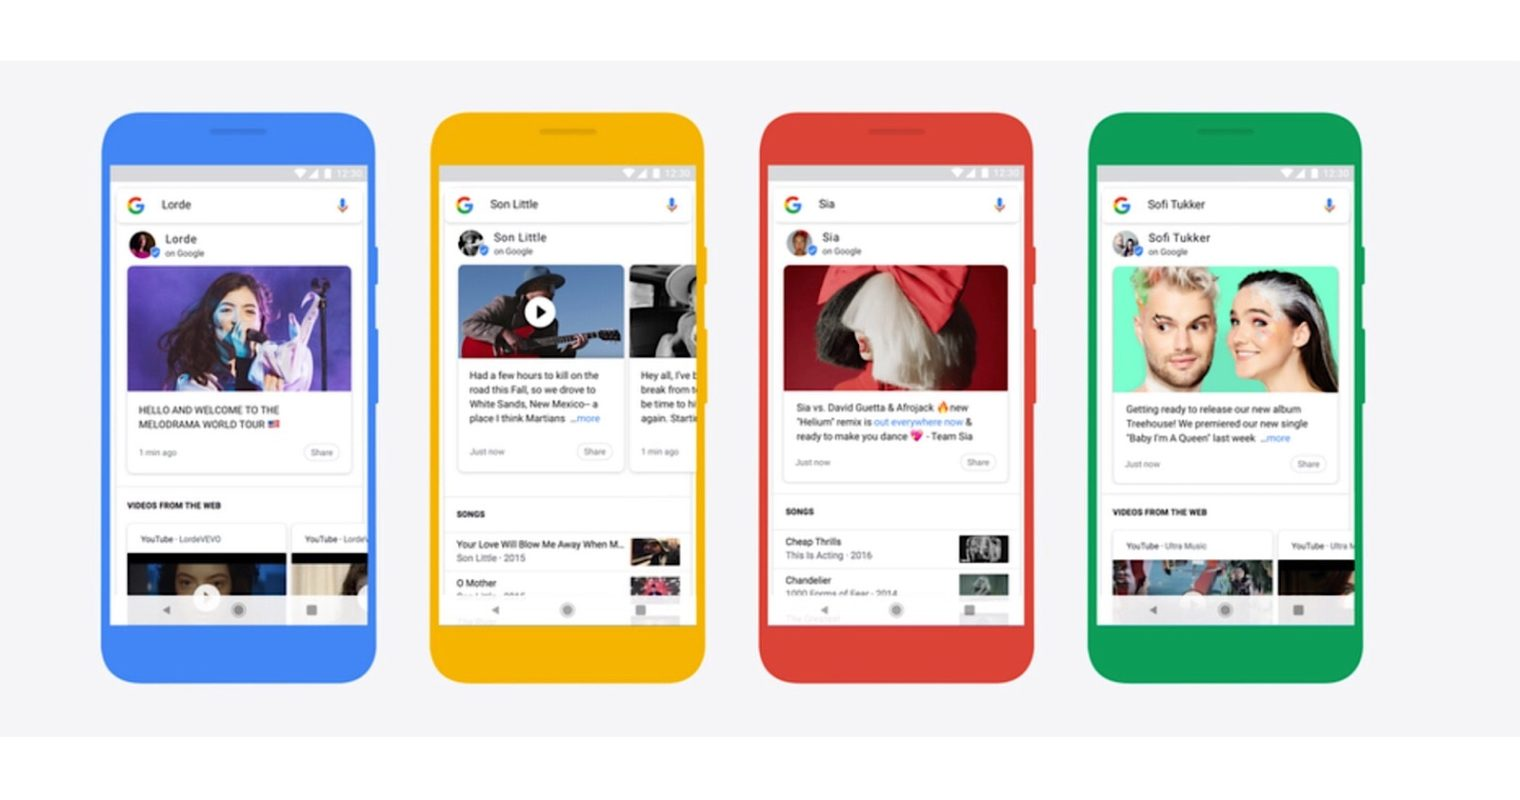 Google Allows Musicians to Post Directly to Search Results